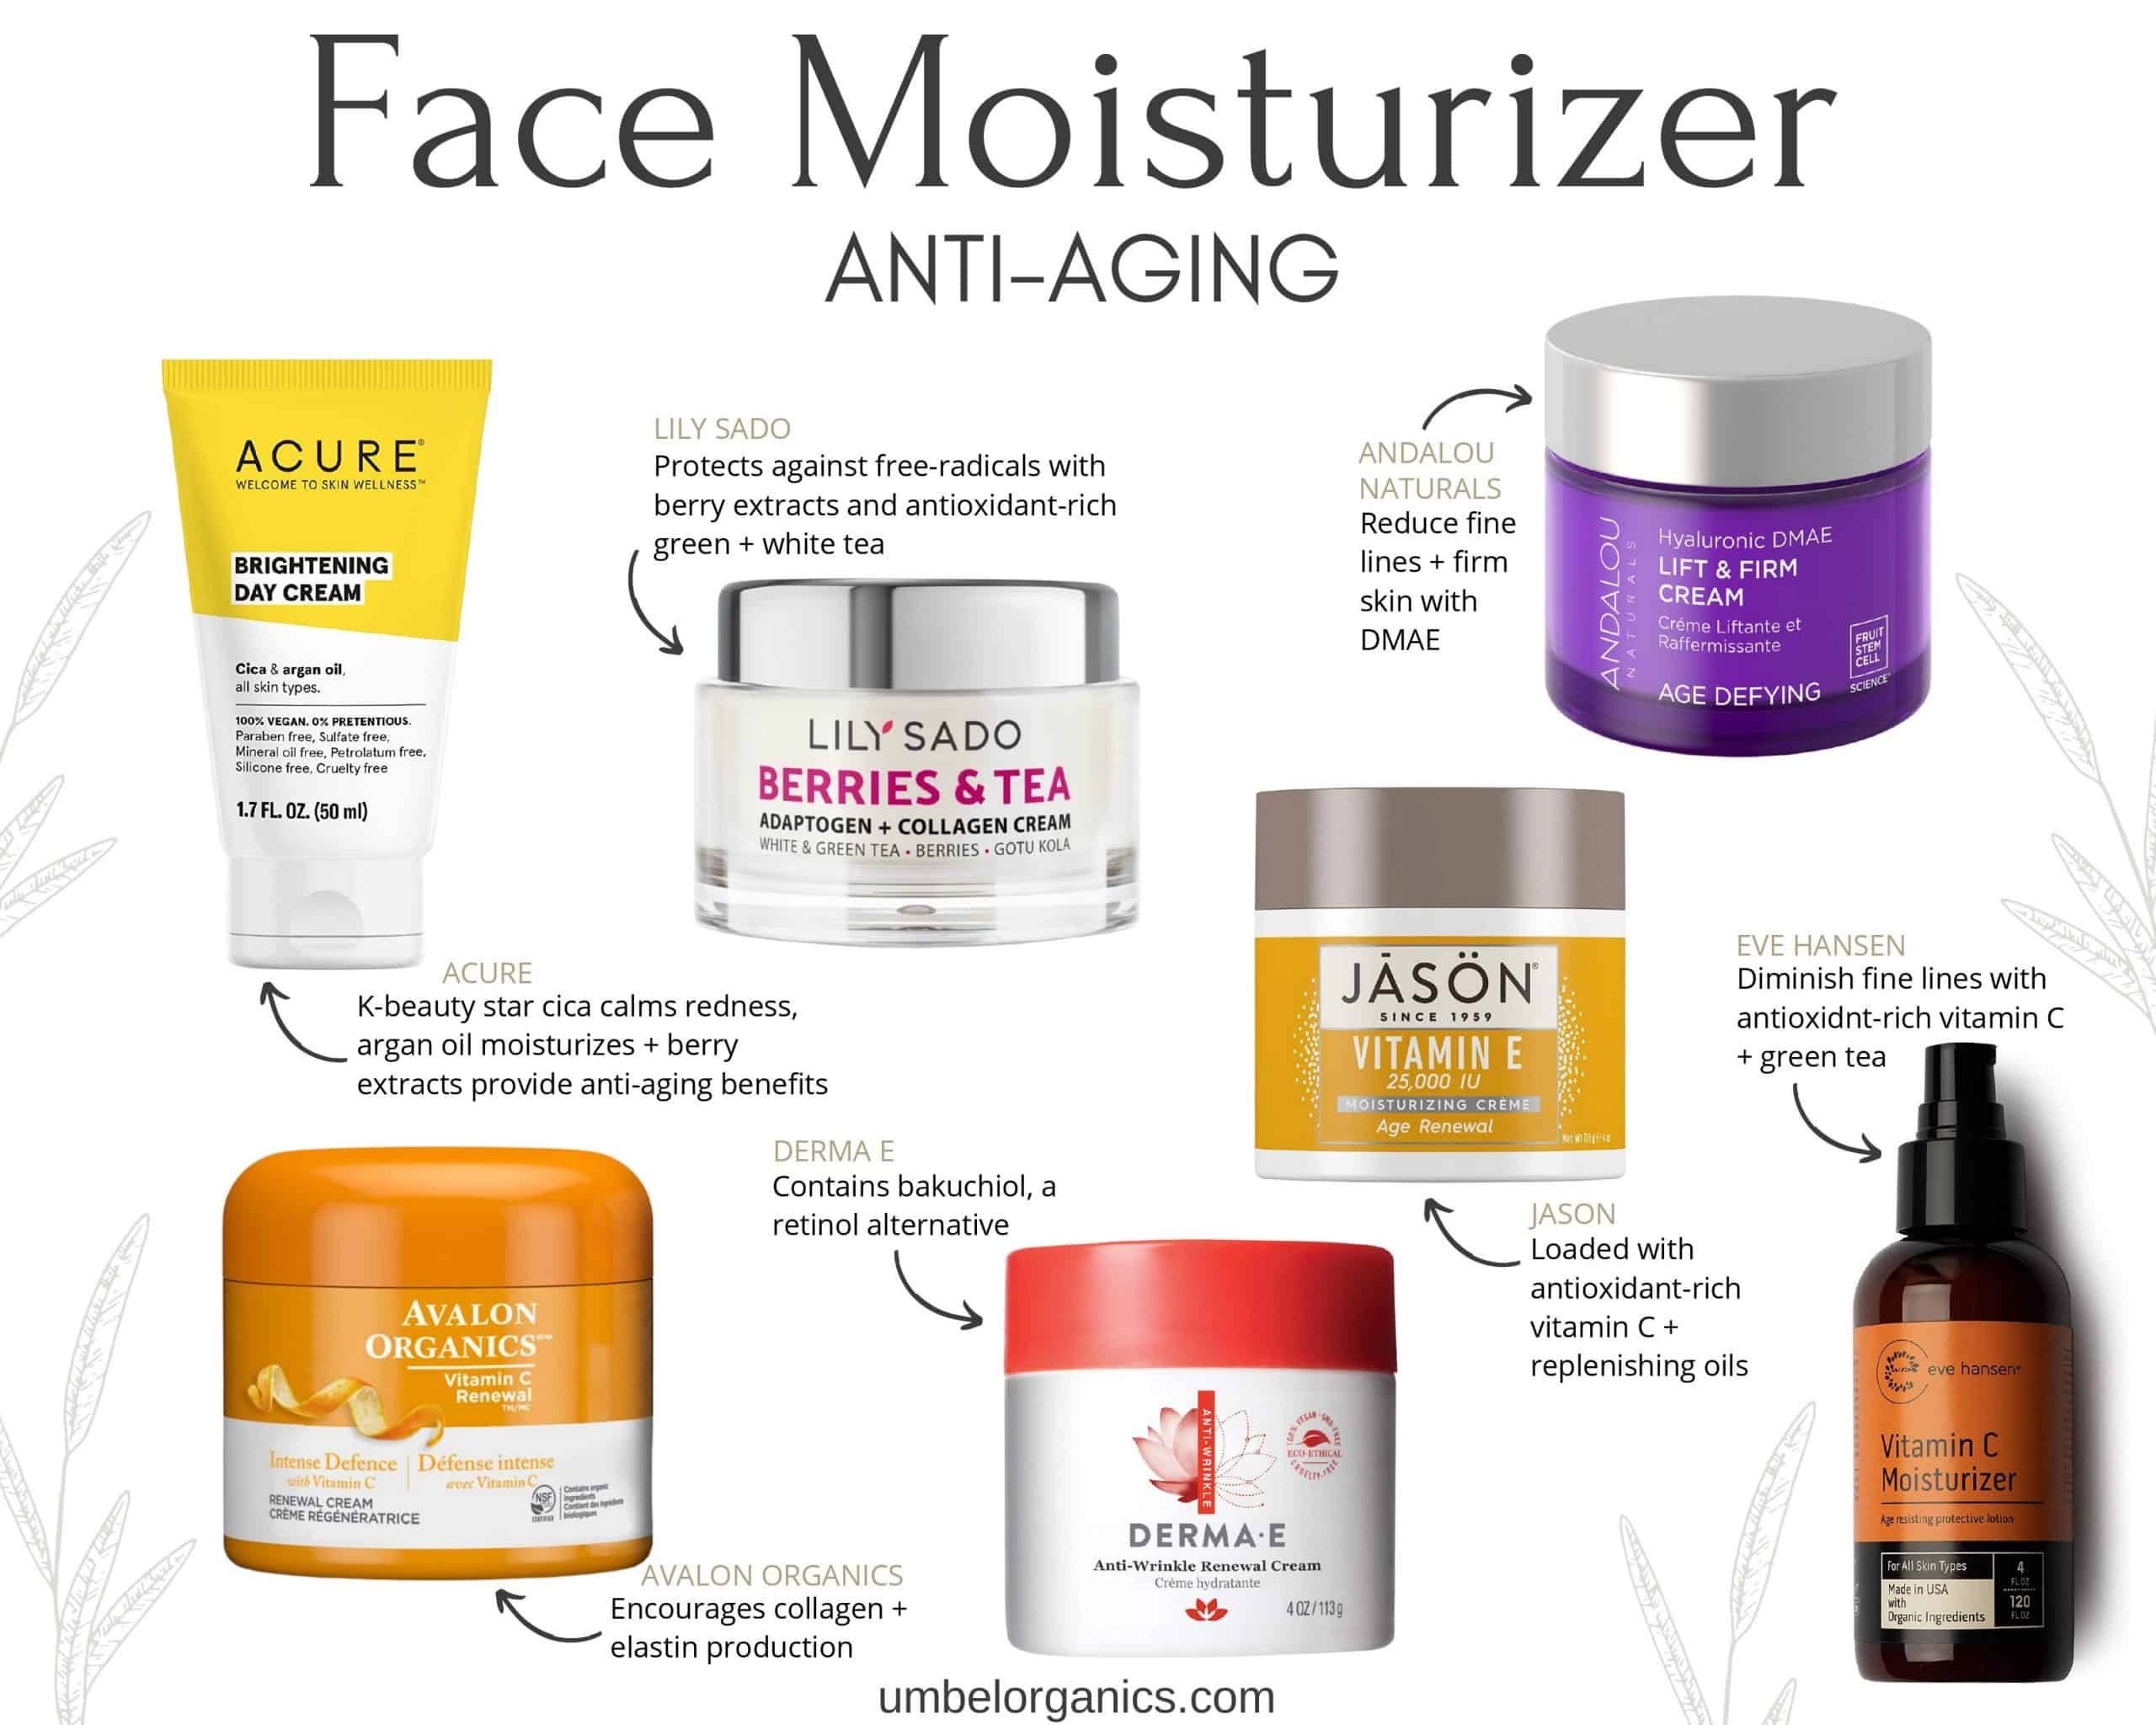 7 Brands of Clean, Natural Anti-Aging Budget Face Cream